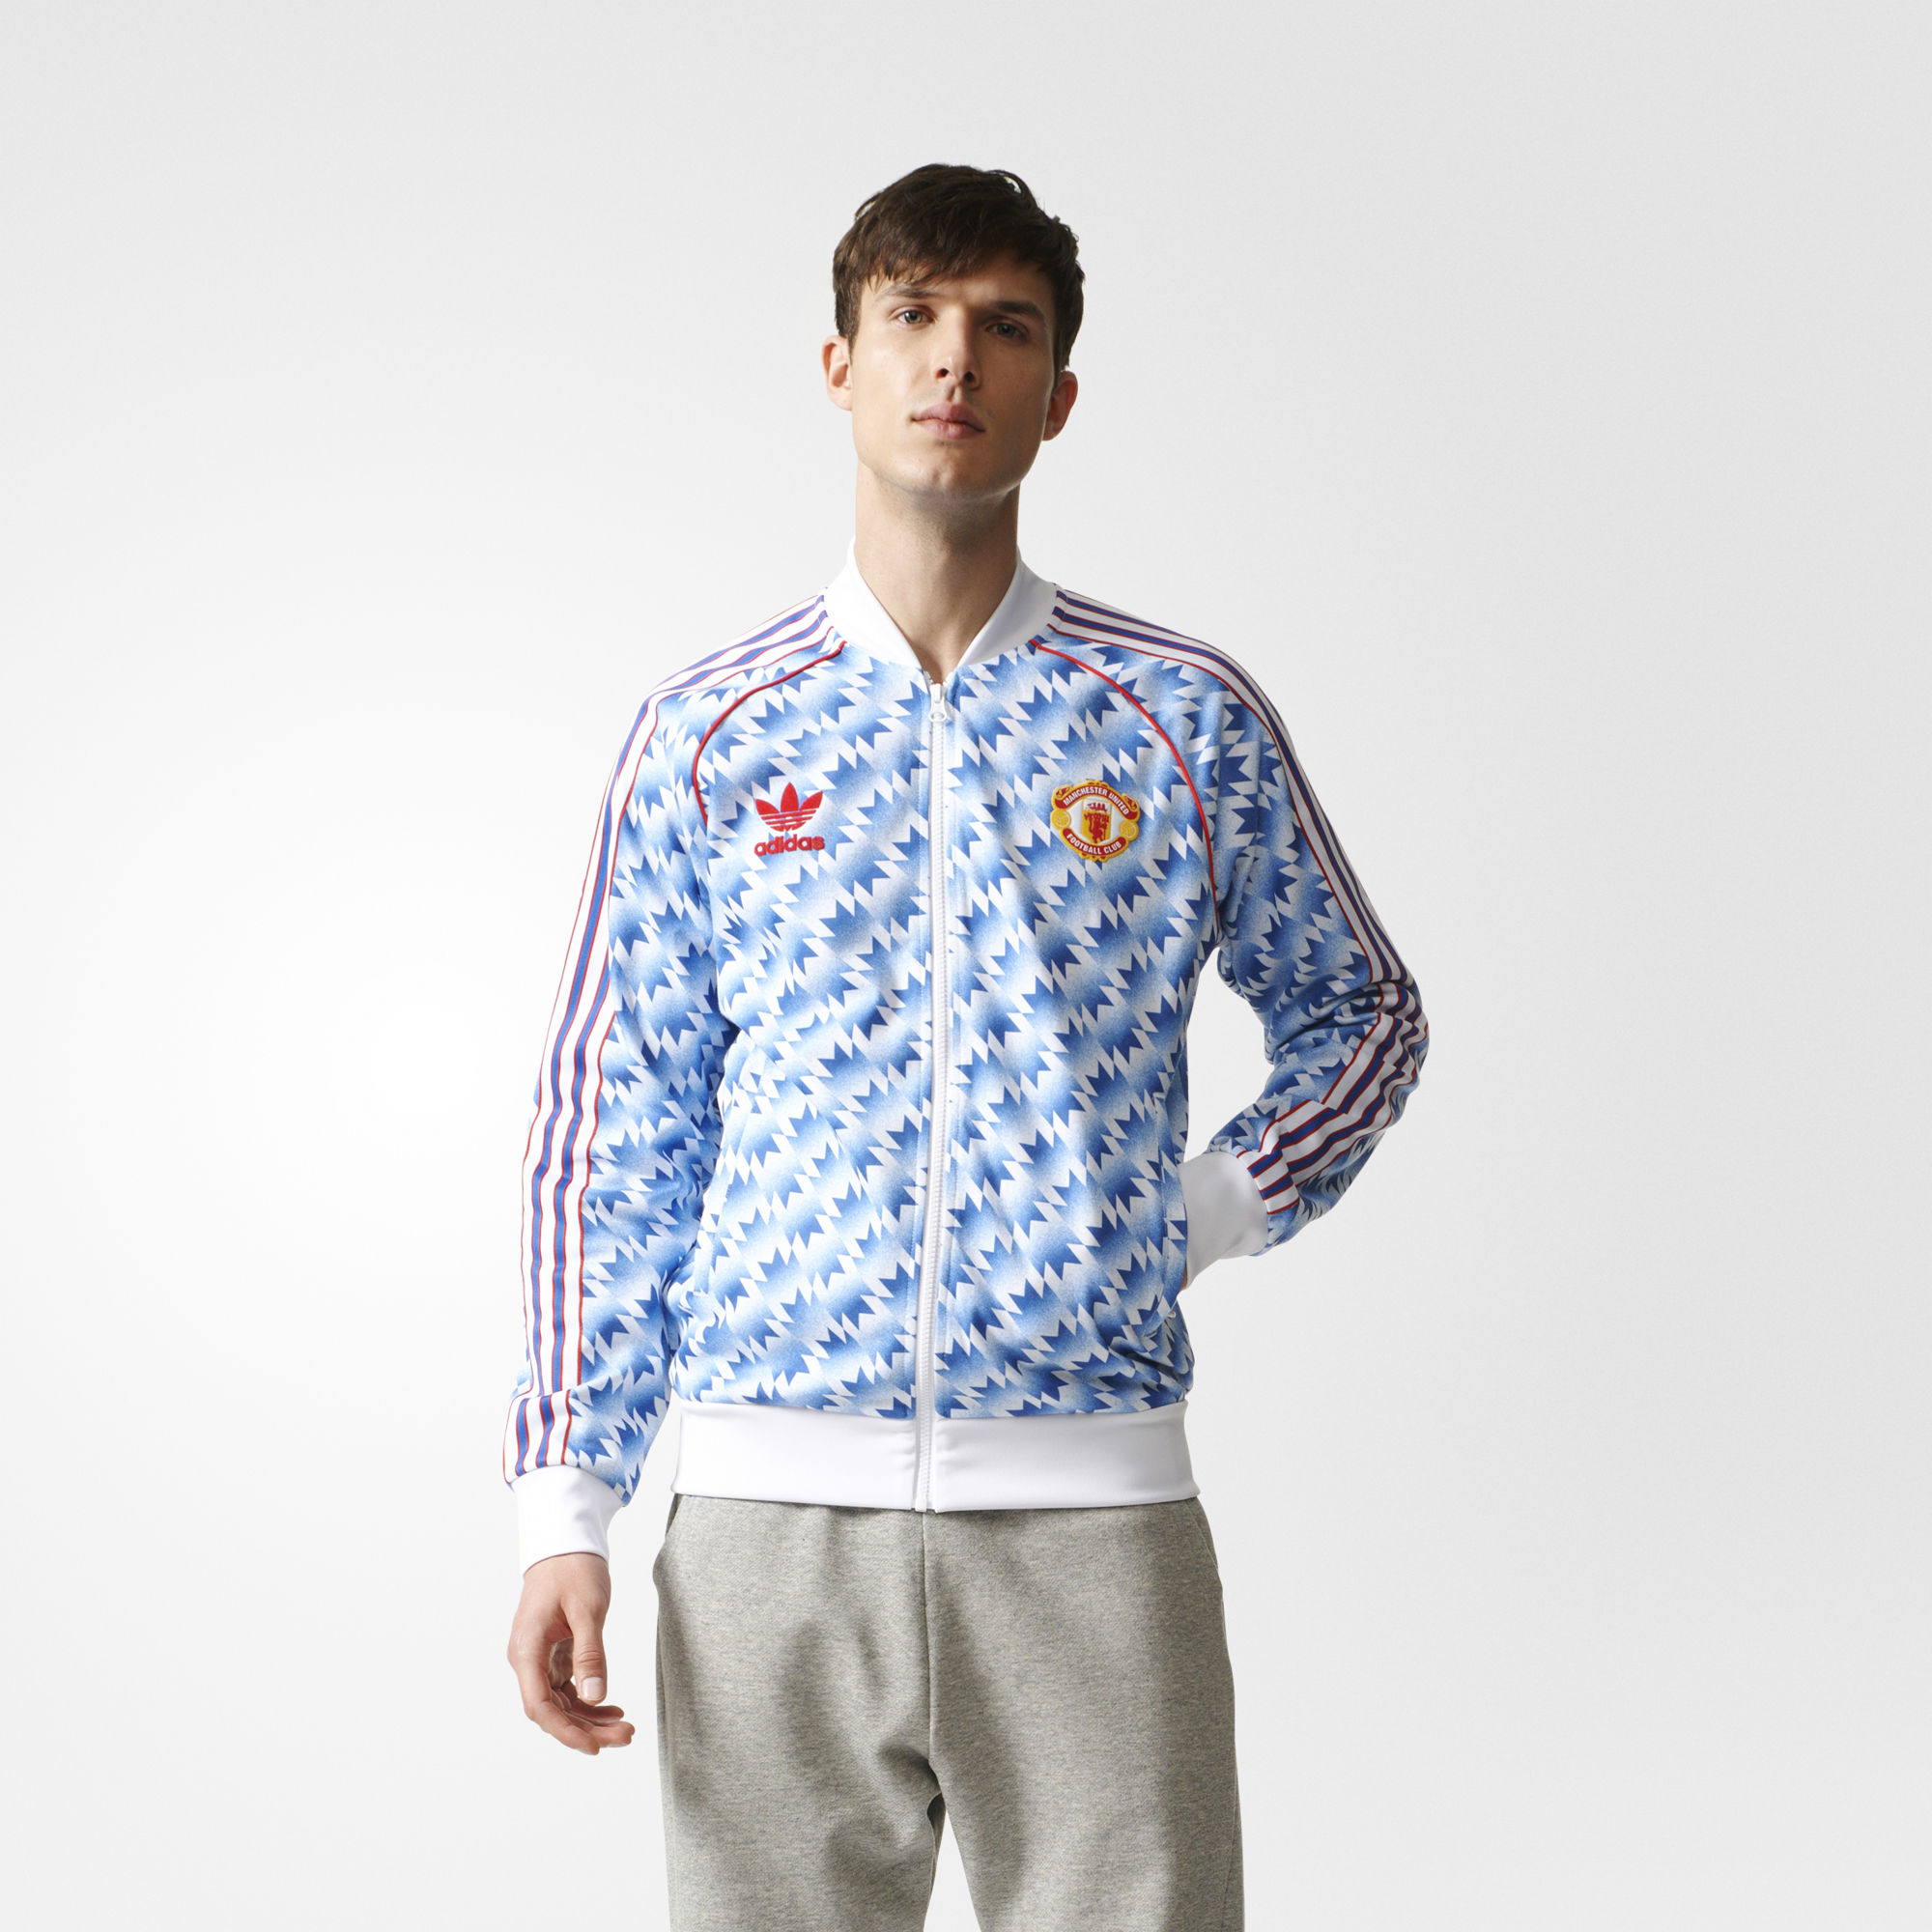 e34c28fa1 Click to enlarge image  manchester united fc adidas originals 90s away jersey track jacket a.jpg ...